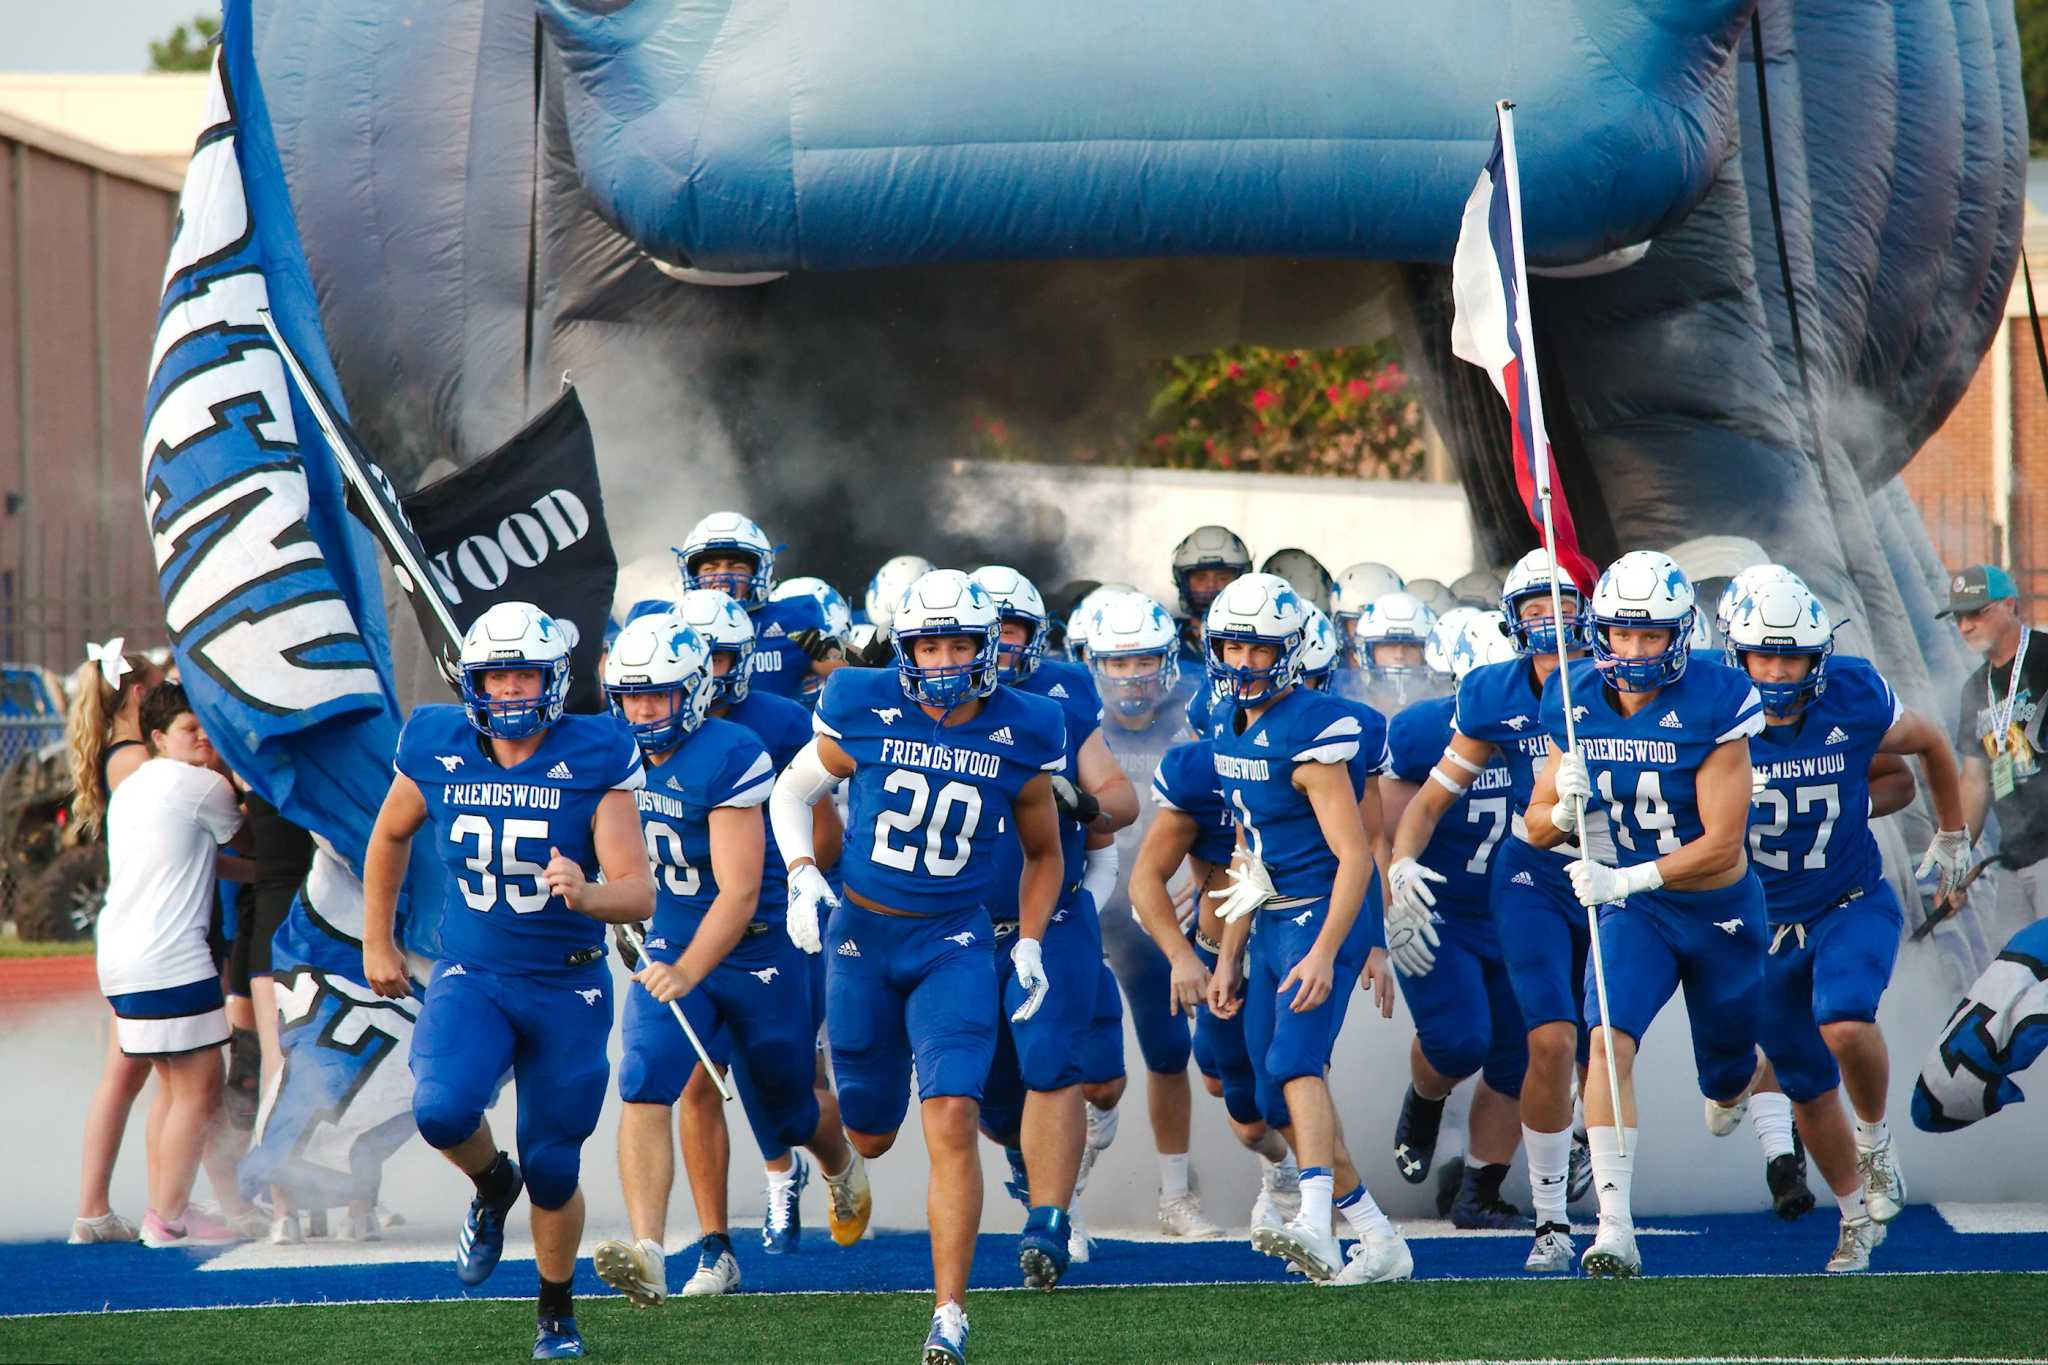 Football: Friendswood gearing up for showdown with Richmond Foster